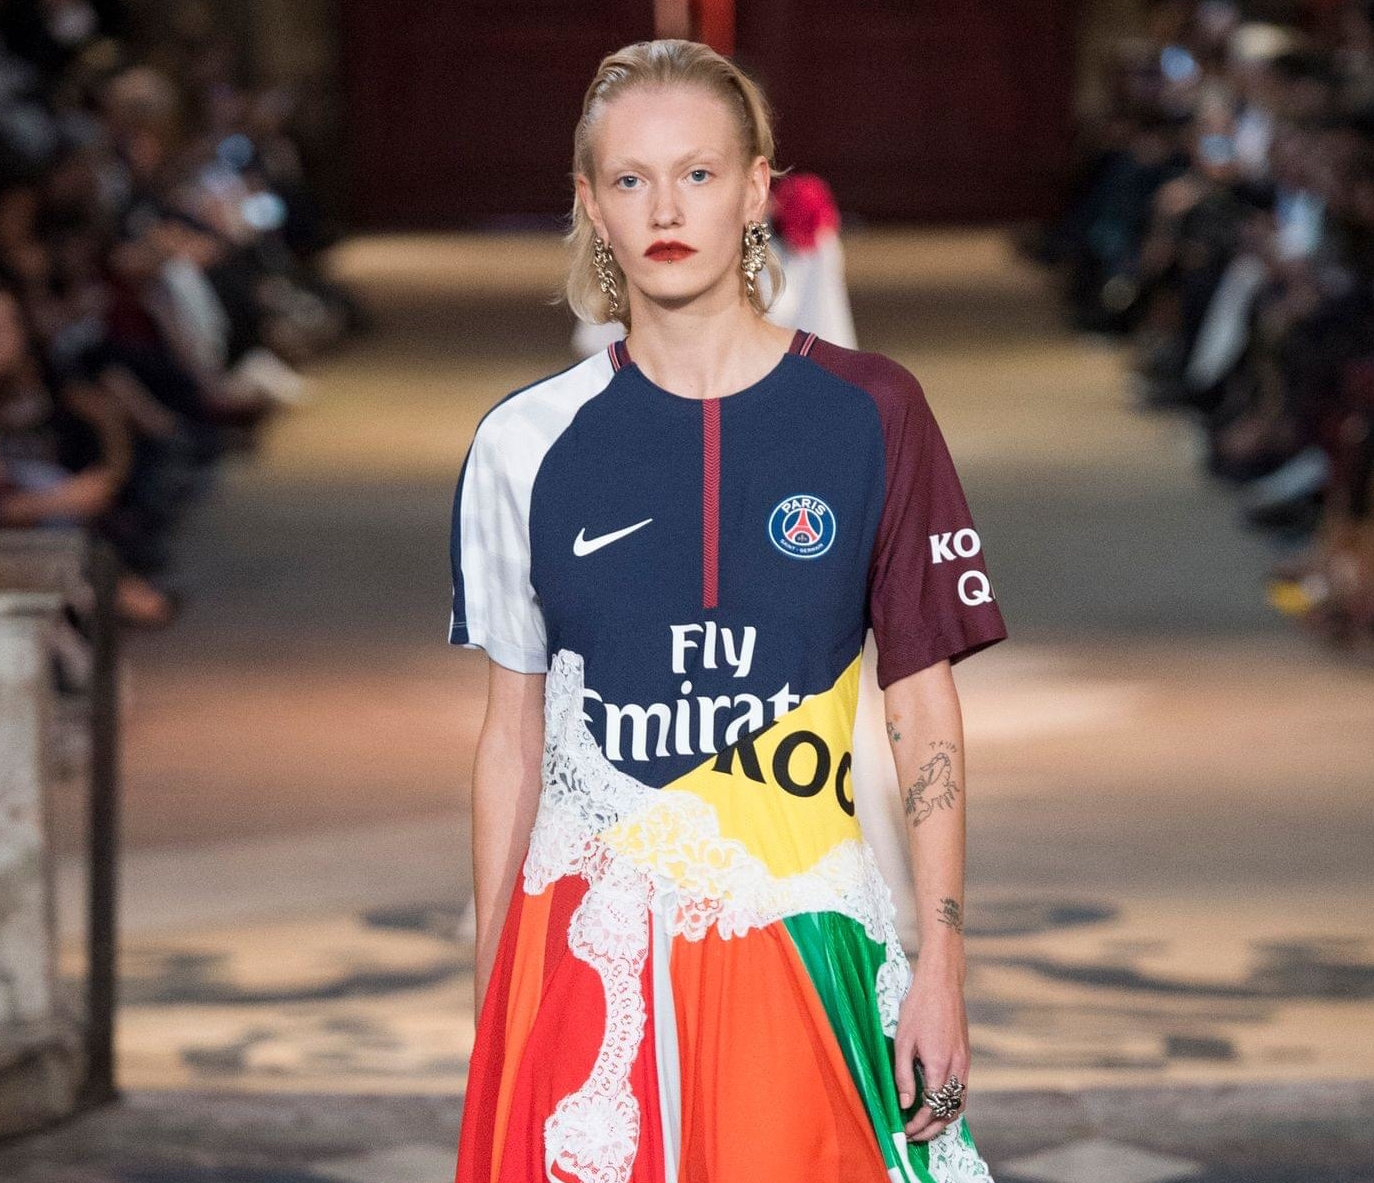 Christelle Kocher revisite les maillots du Paris Saint Germain sur son défilé SS18